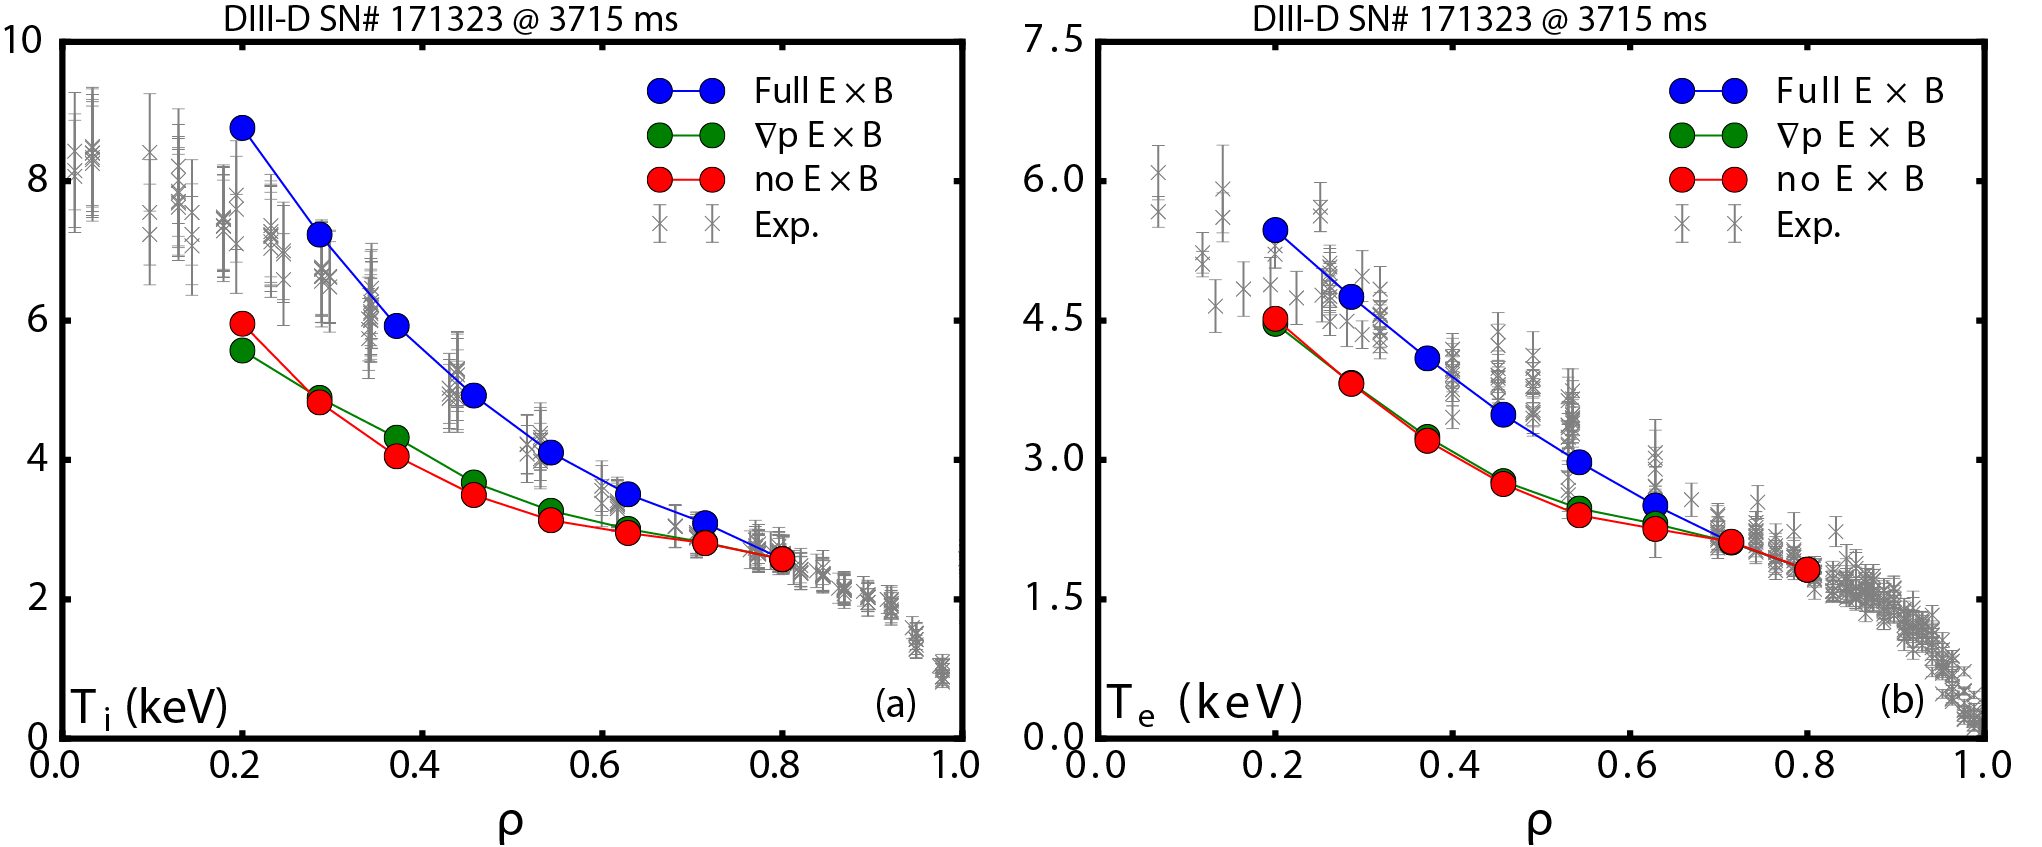 Predicted temperature profiles with experimental ExB shear, with no ExB shear, and with only the pressure gradient driven ExB shear, using TGLF for turbulence transport and NEO for neoclassical transport integrated in the transport solver TGYRO. Density profile fixed to experimental profile.